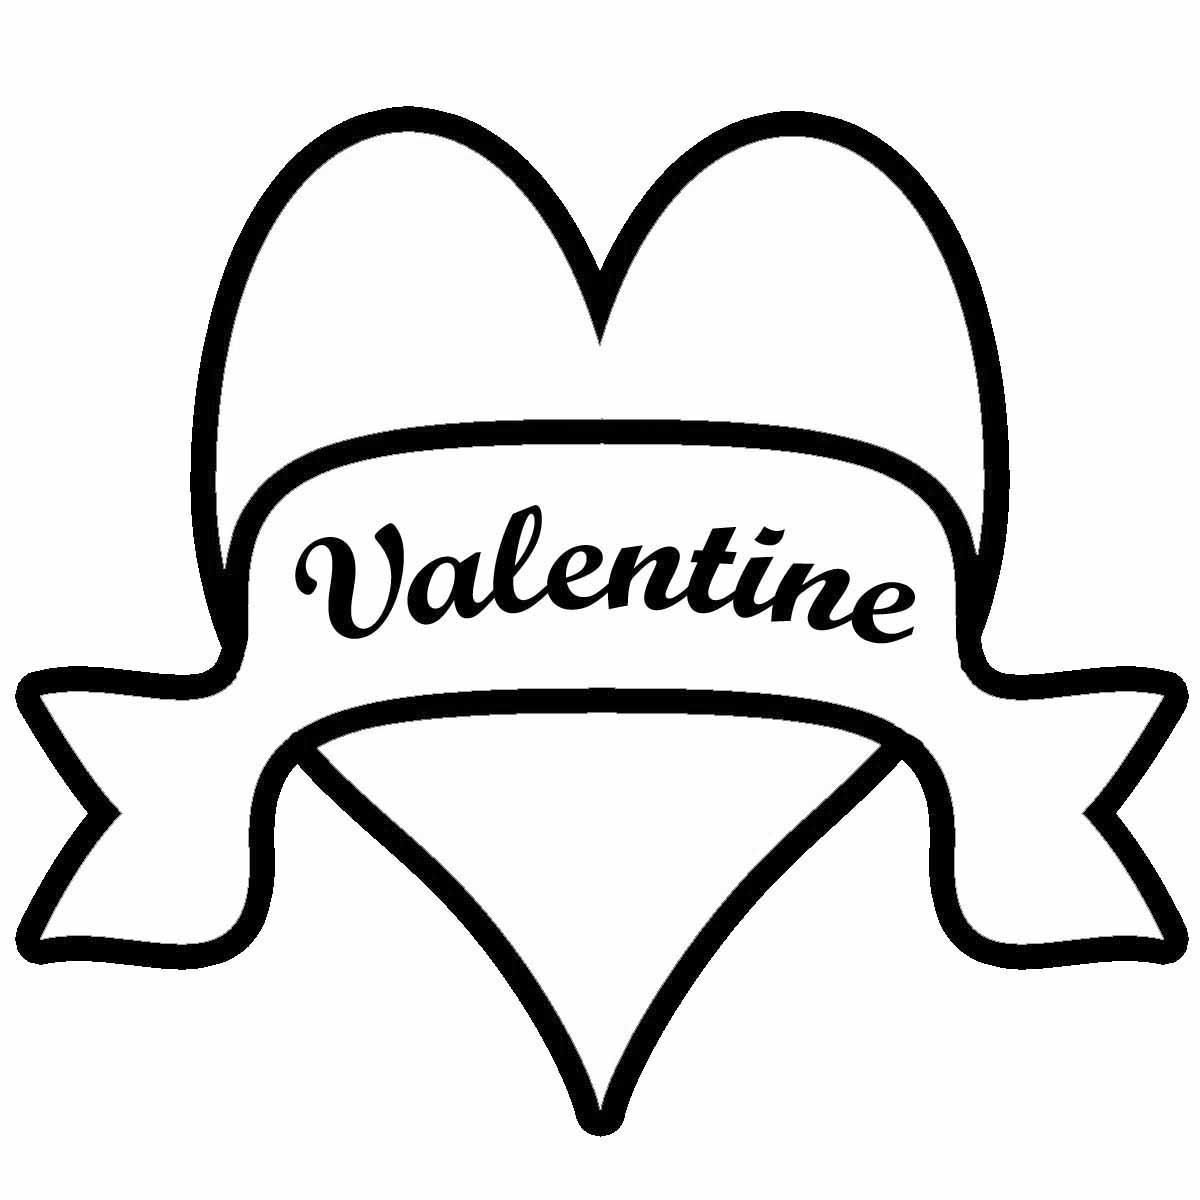 hight resolution of valentine clip art black and white 2014 download free word